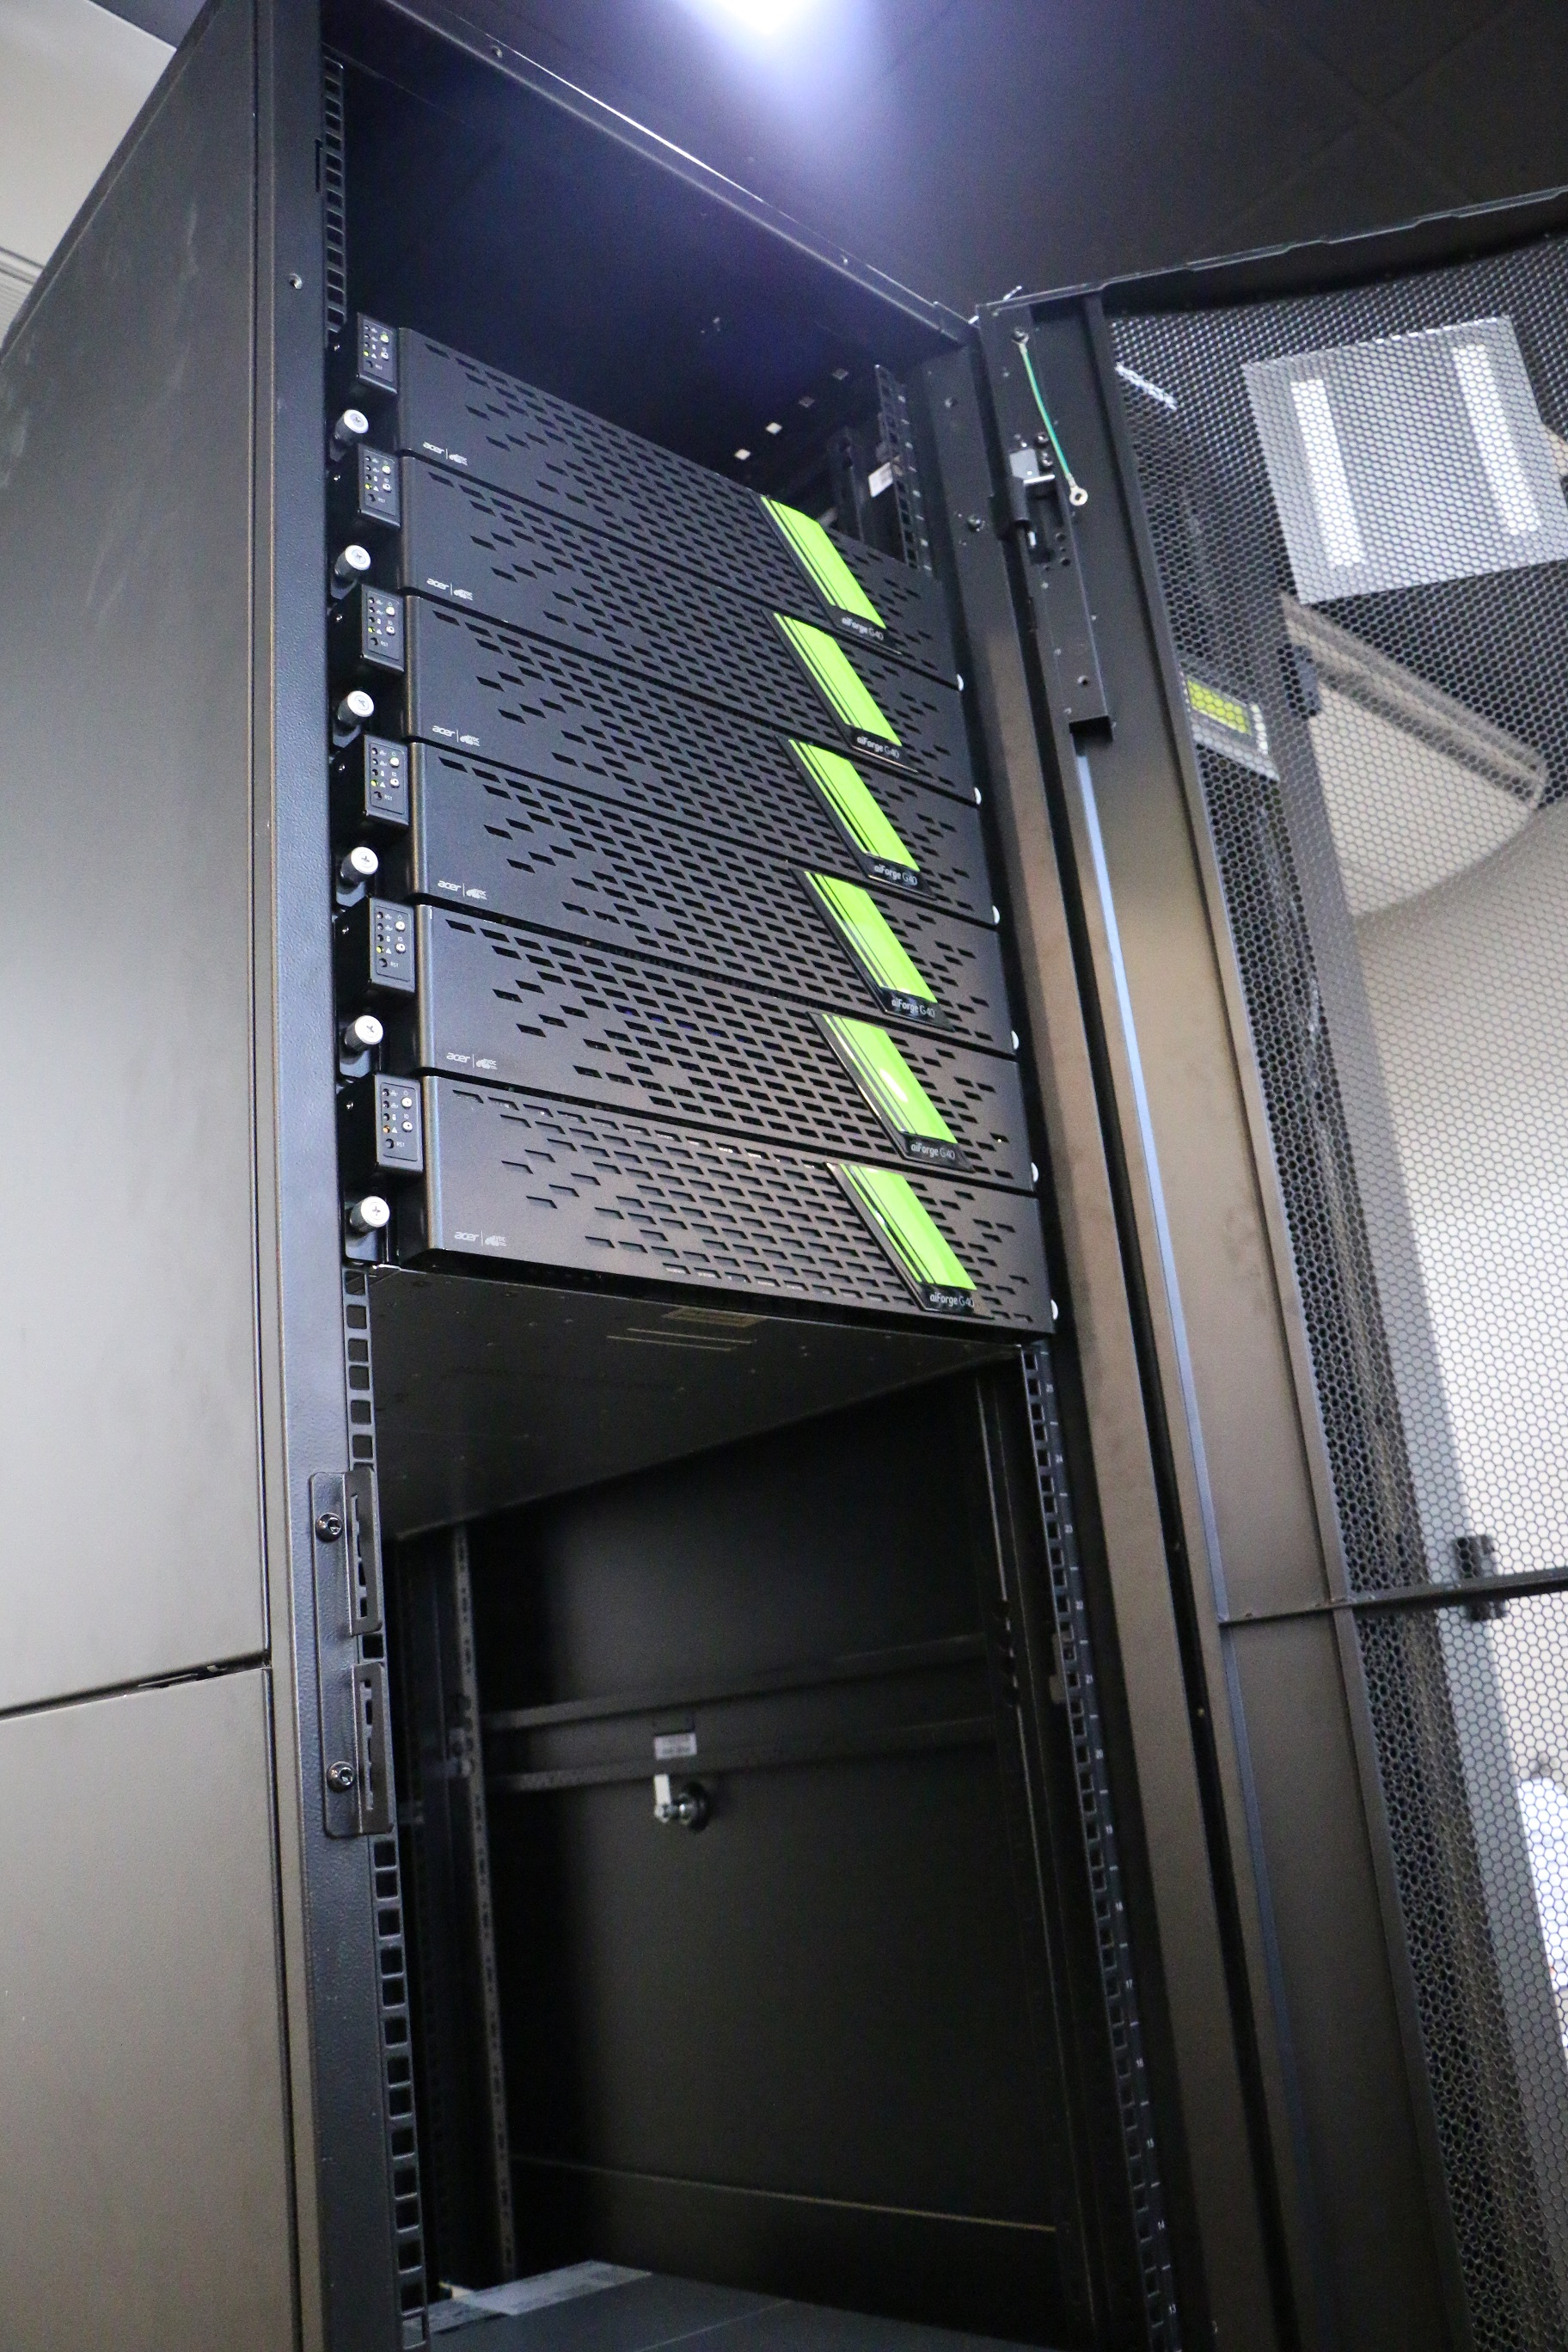 The supercomputer at ACCeSs@AIM